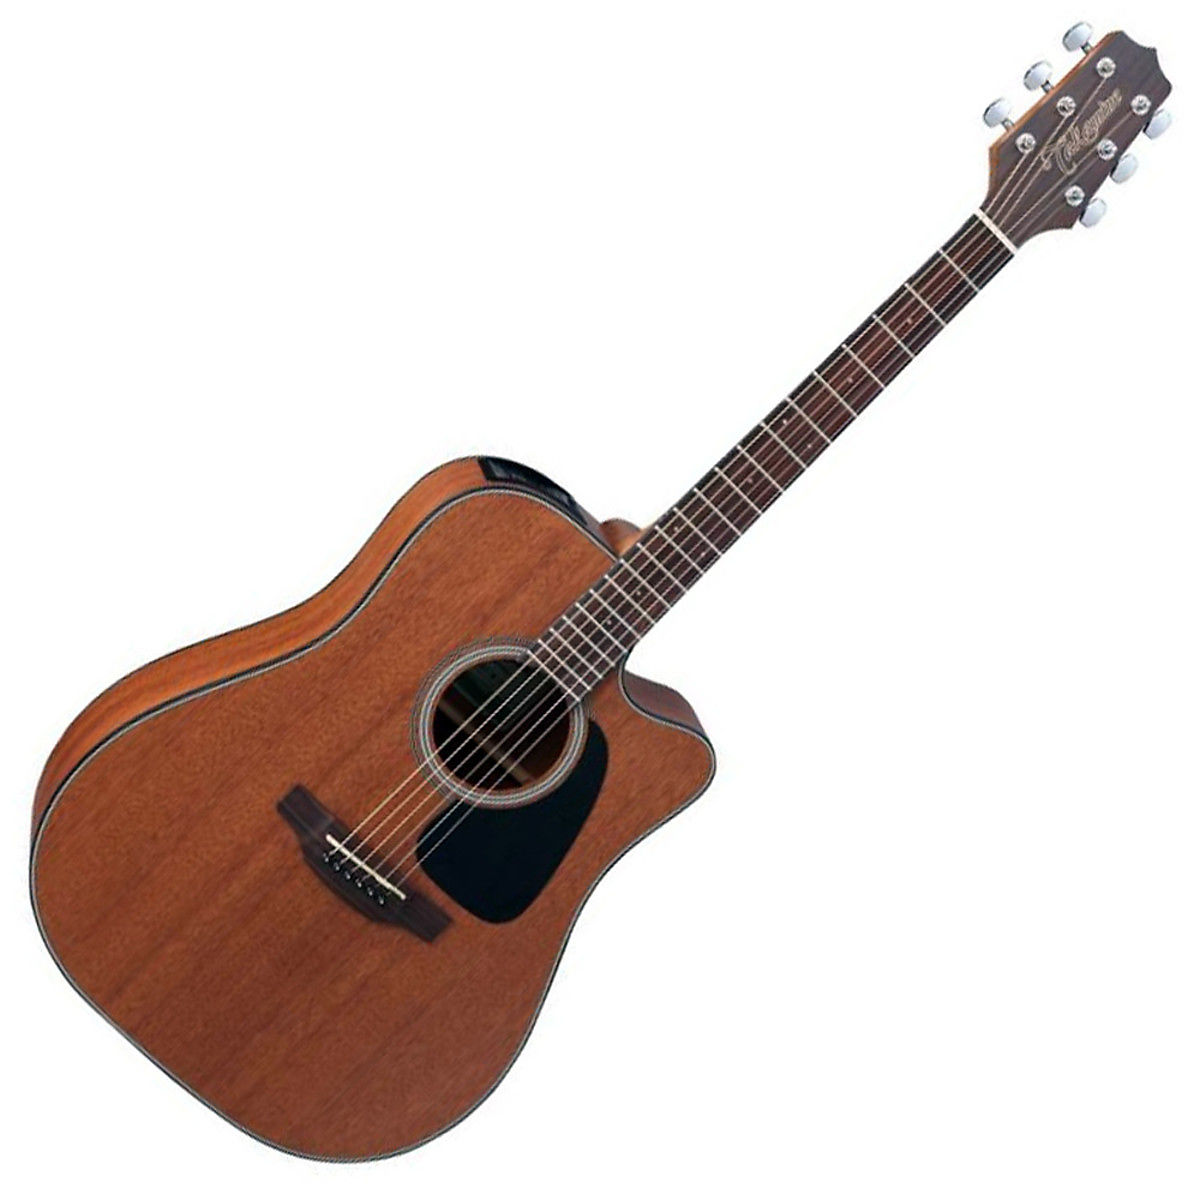 takamine gd11mce g11 series mahogany dreadnought cutaway reverb. Black Bedroom Furniture Sets. Home Design Ideas